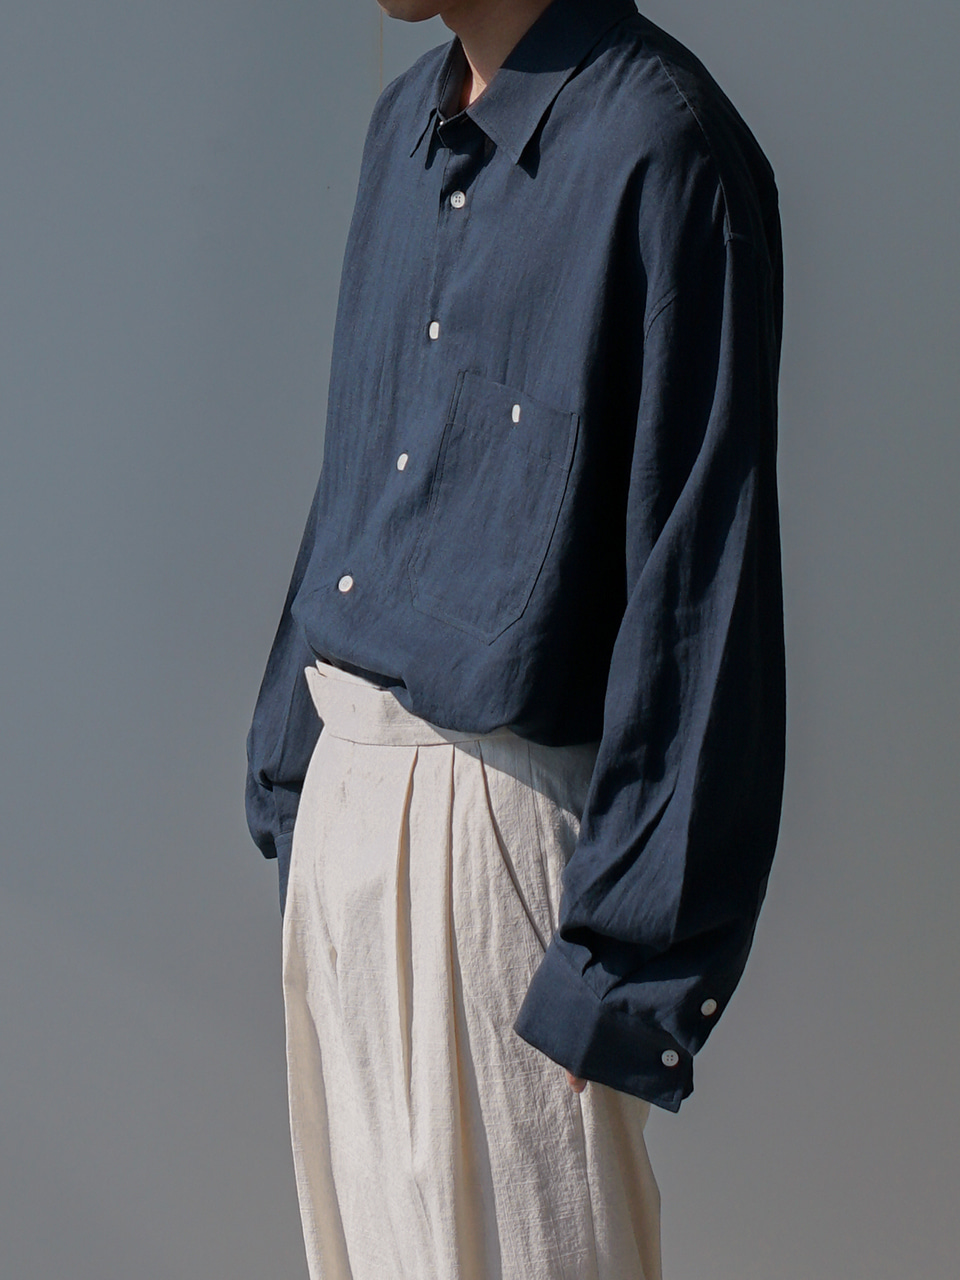 James Oversized Linen Shirt (7color)